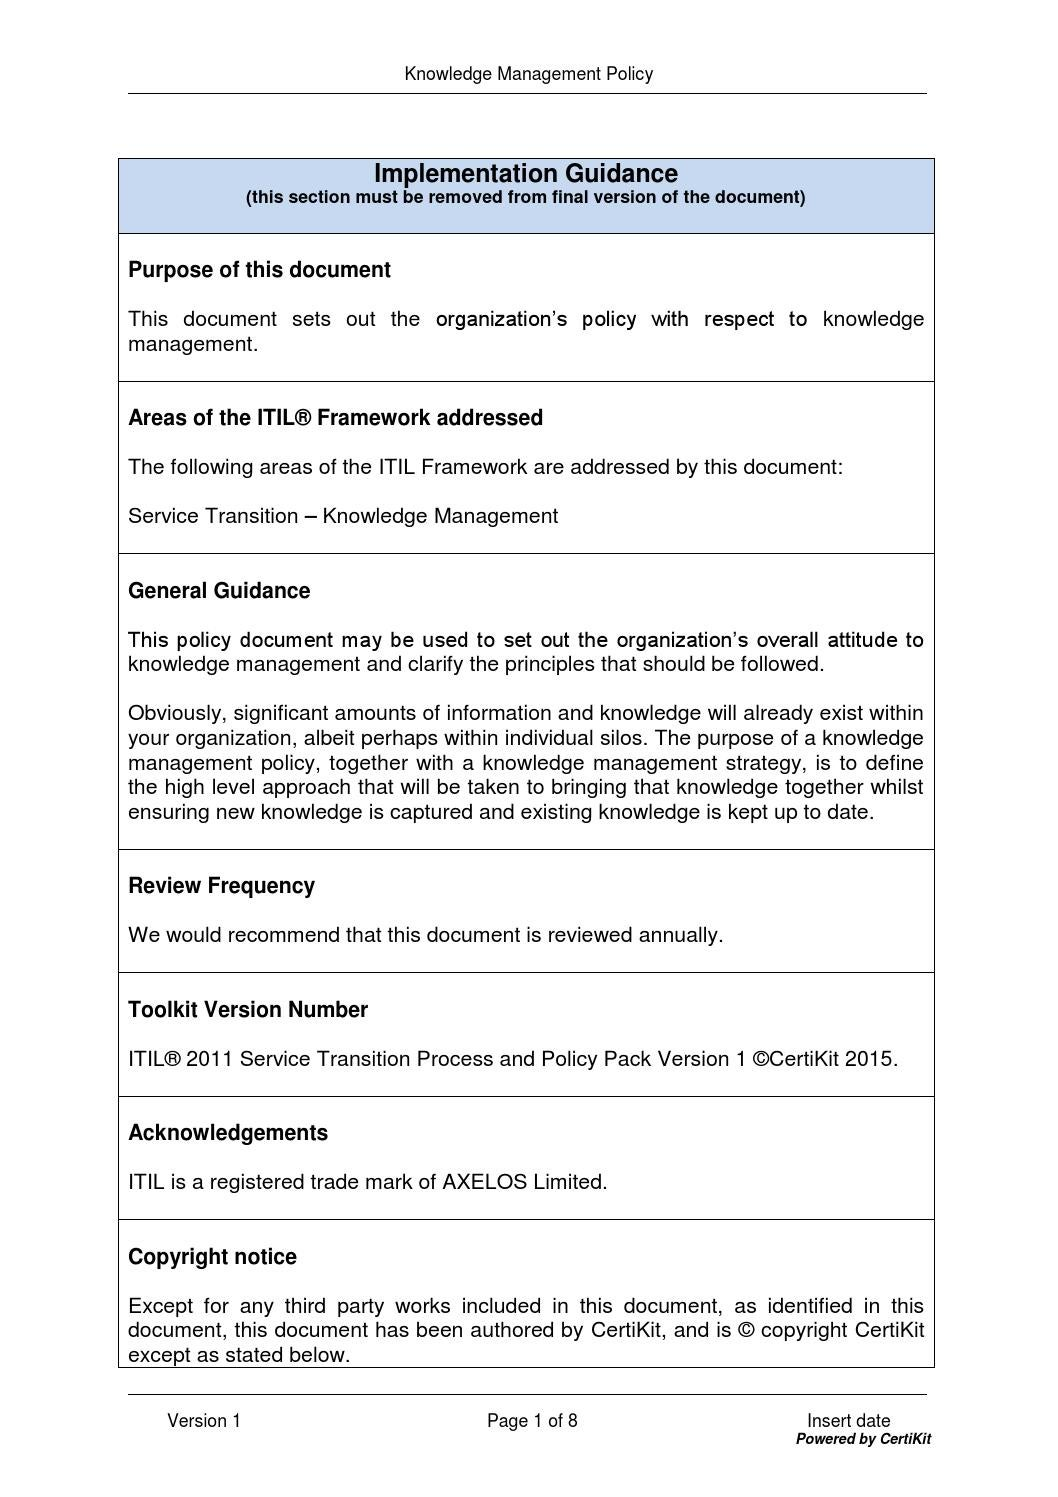 knowledge management and policy working document celltech Soler palacin 2018-07-12  do hereby declare on my honour that, to the best of my knowledge, the only direct or indirect interests i have in the pharmaceutical industry are those listed below: 21 employment  of the european medicines agency's management board, committees, working parties, expert groups, or any other such meeting work as.